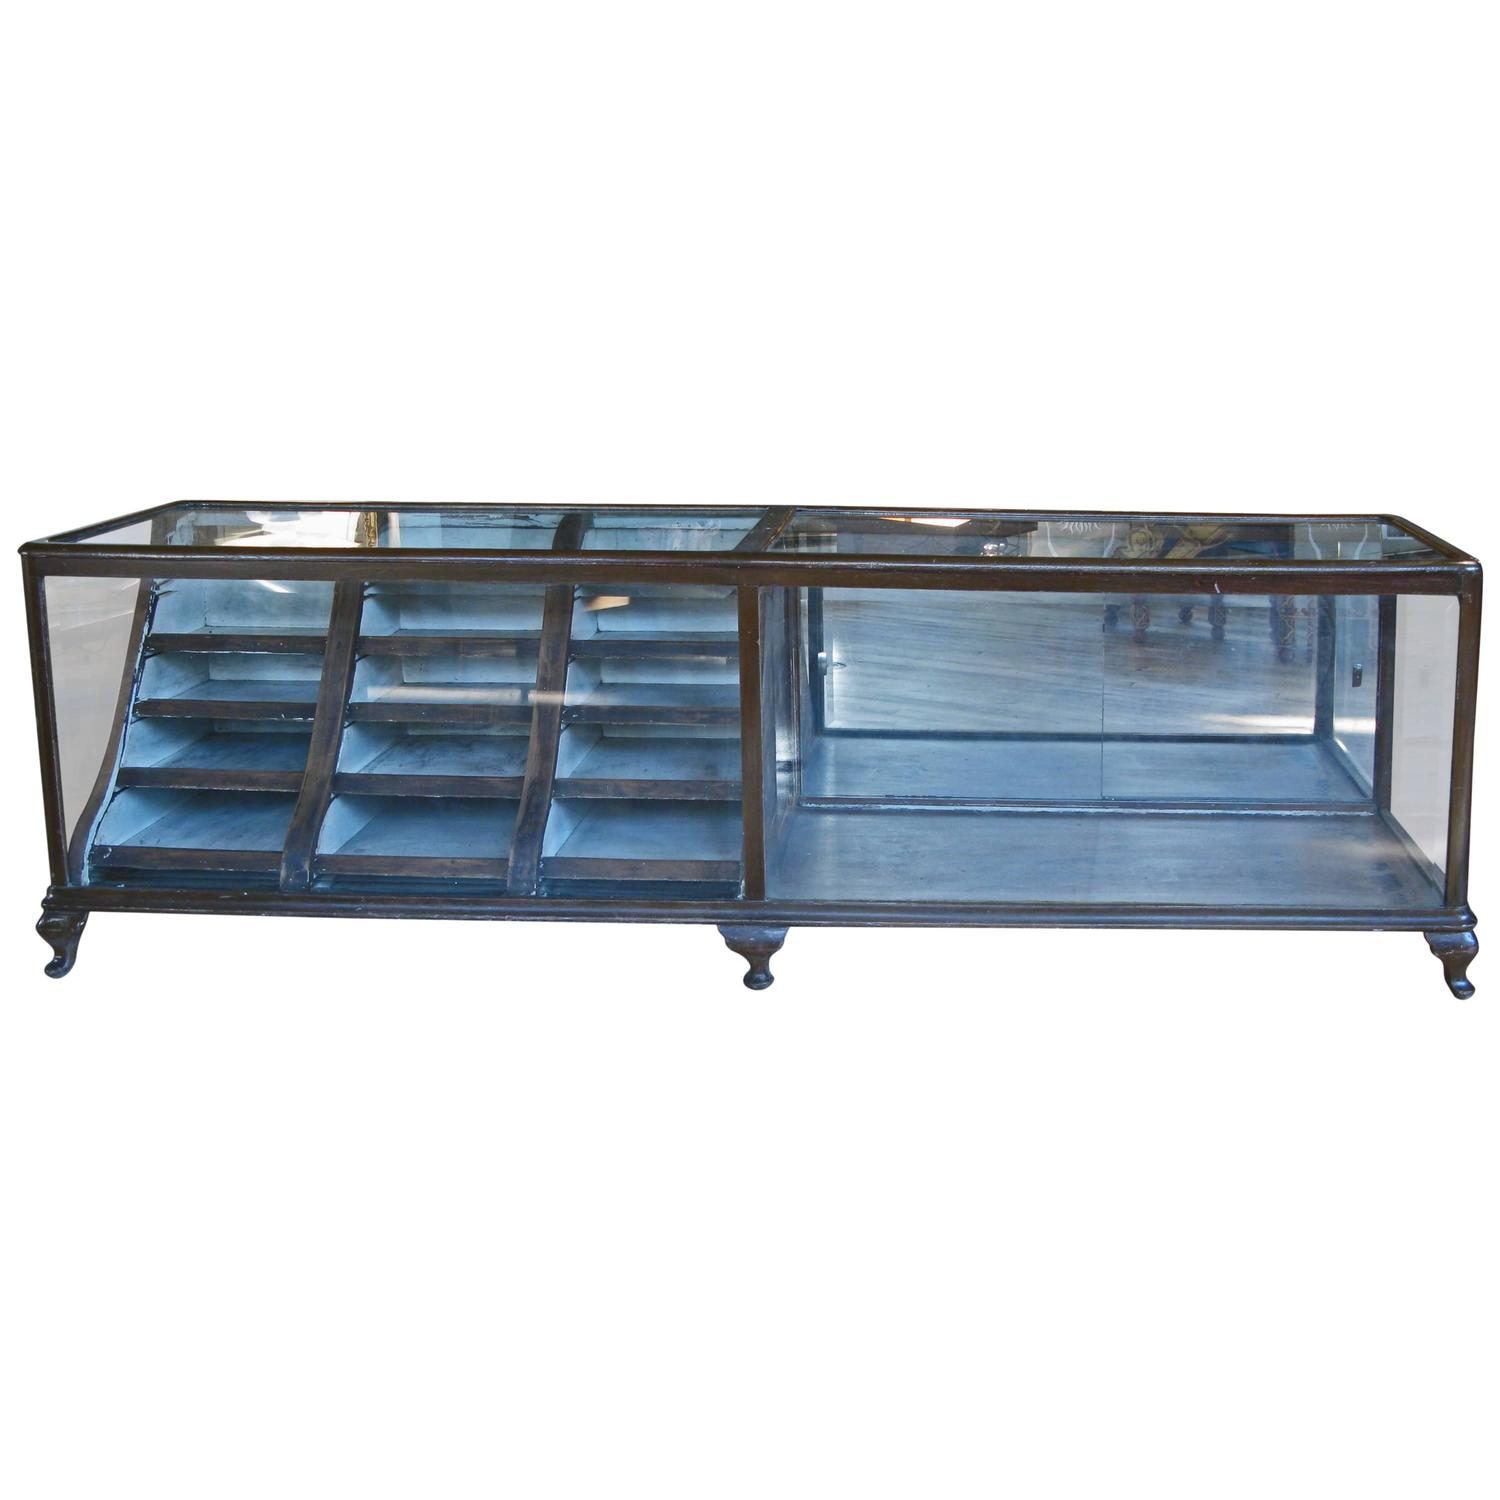 Antique 1920s Glass Showcase With Curved Drawers From